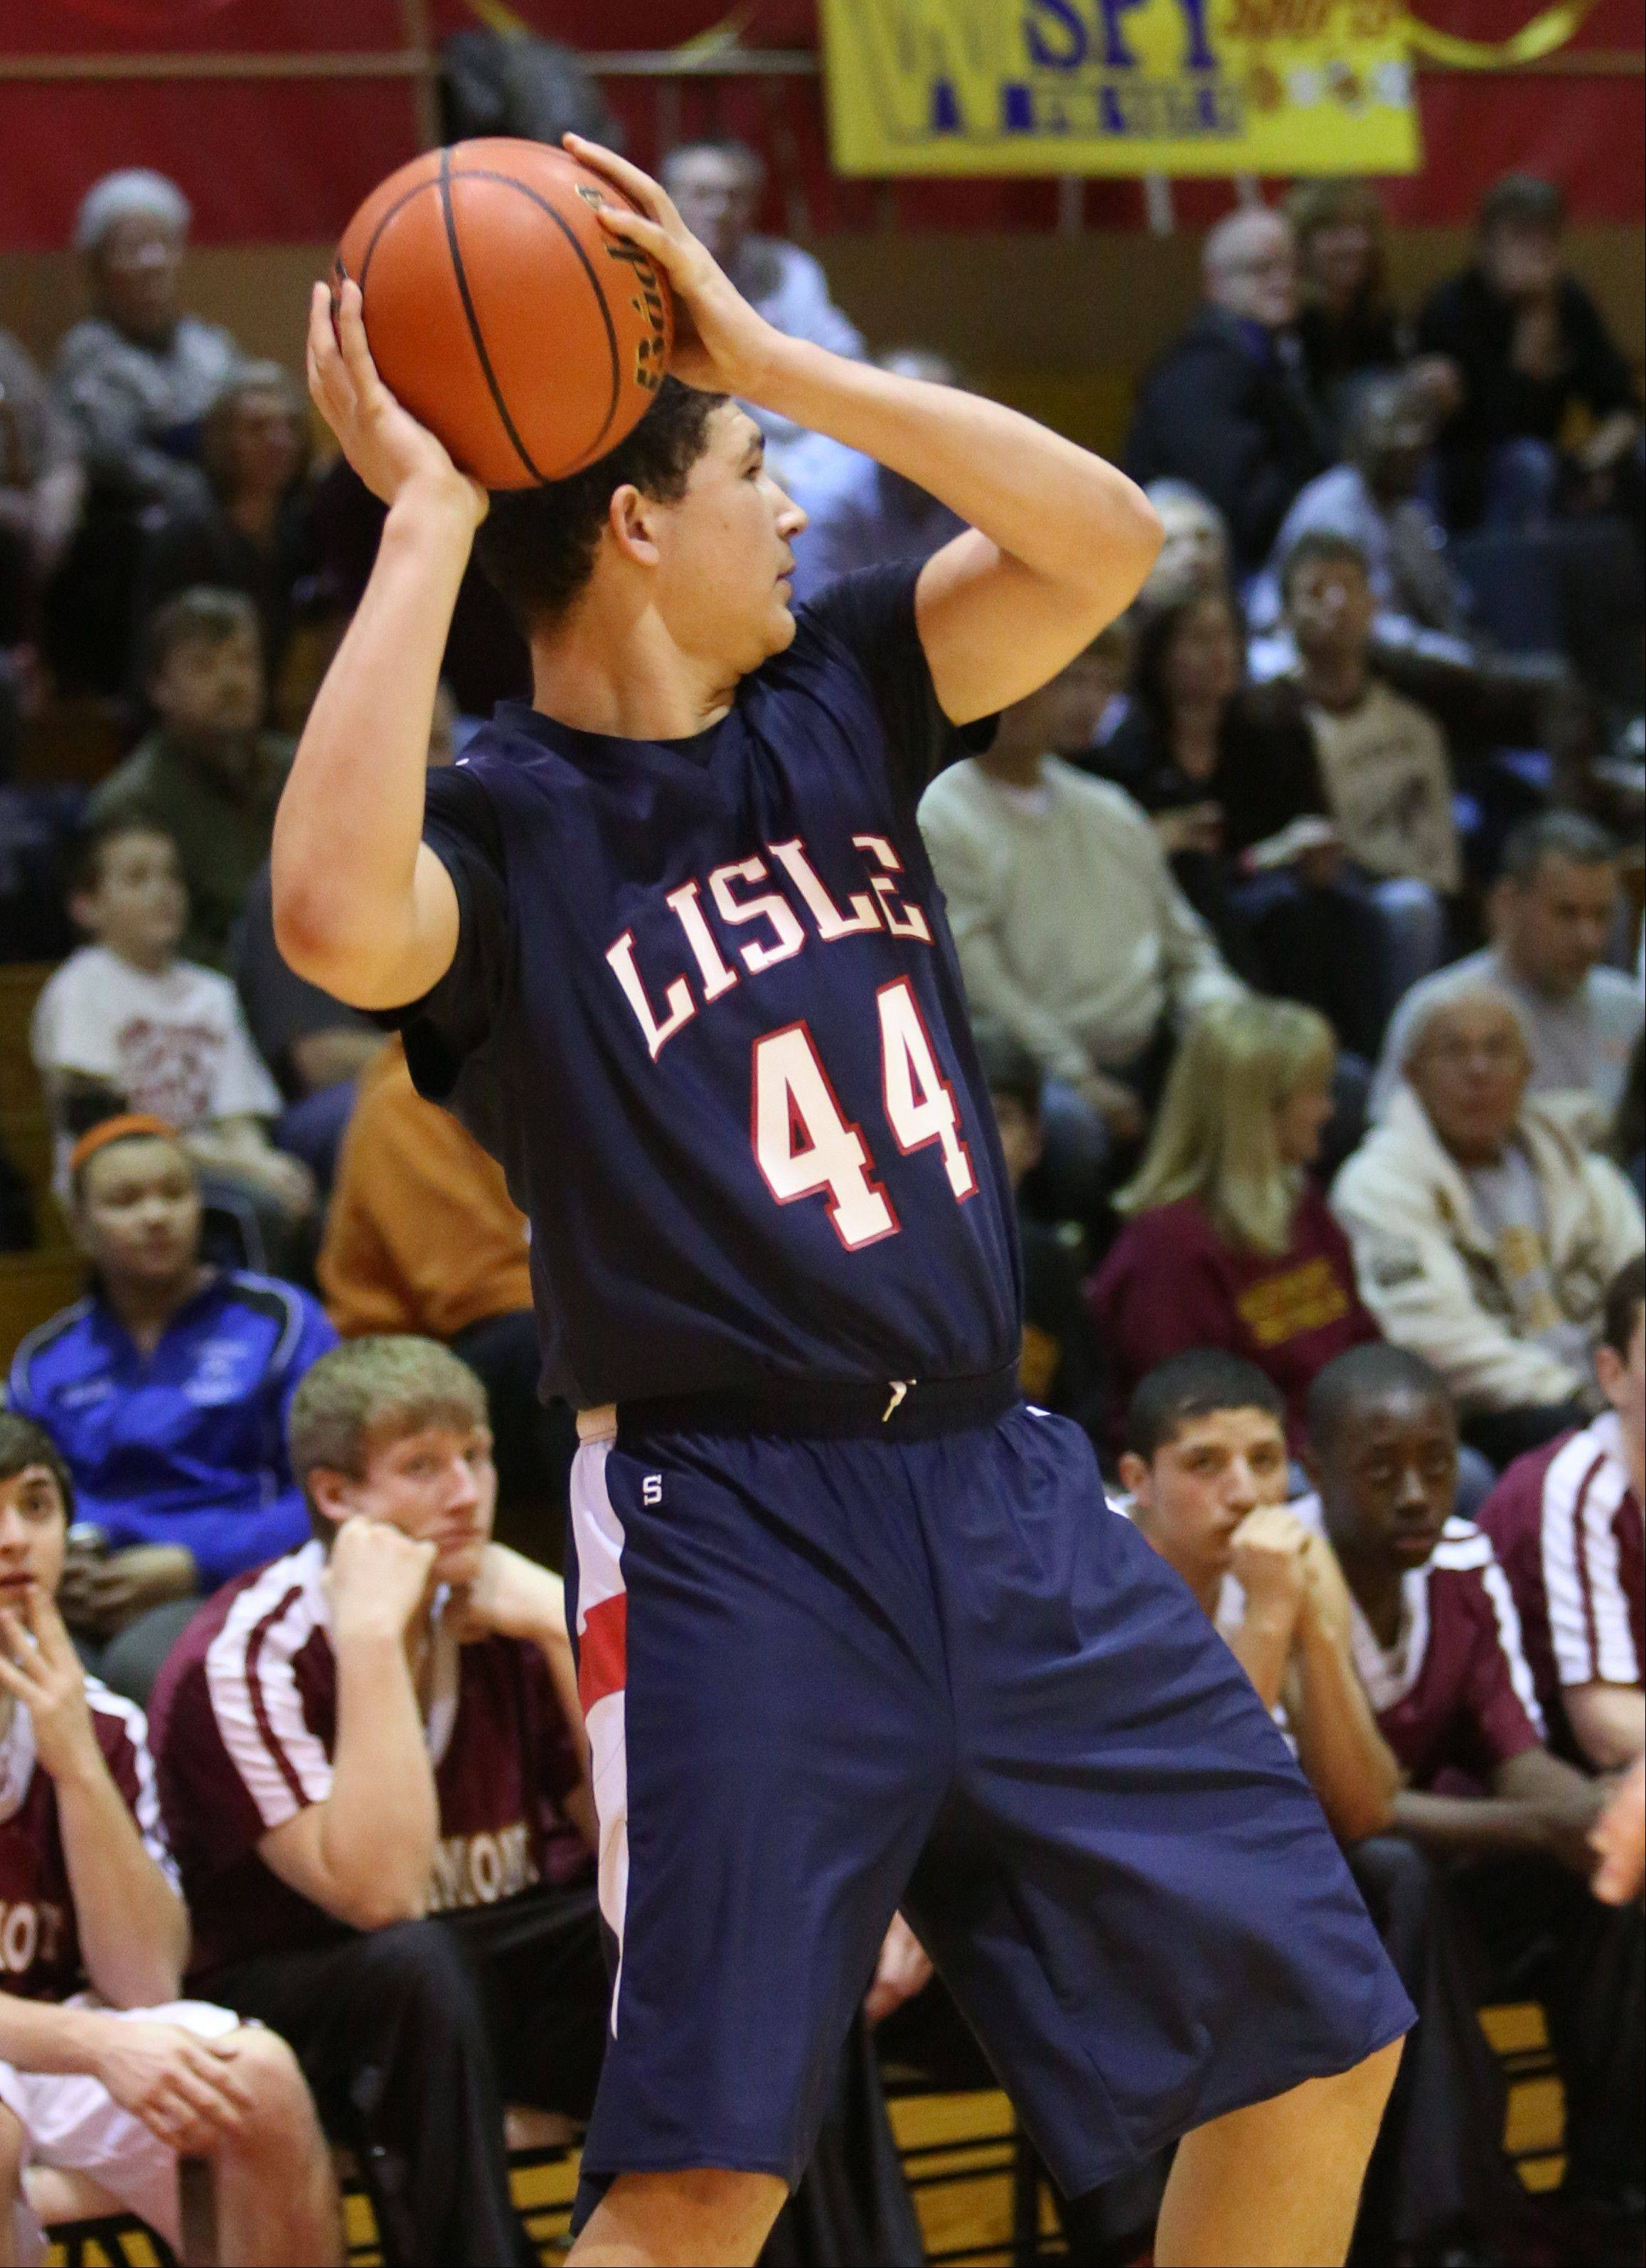 Westmont hosted Lisle Monday night at Westmont High School for Class 2A regional boys basketball.